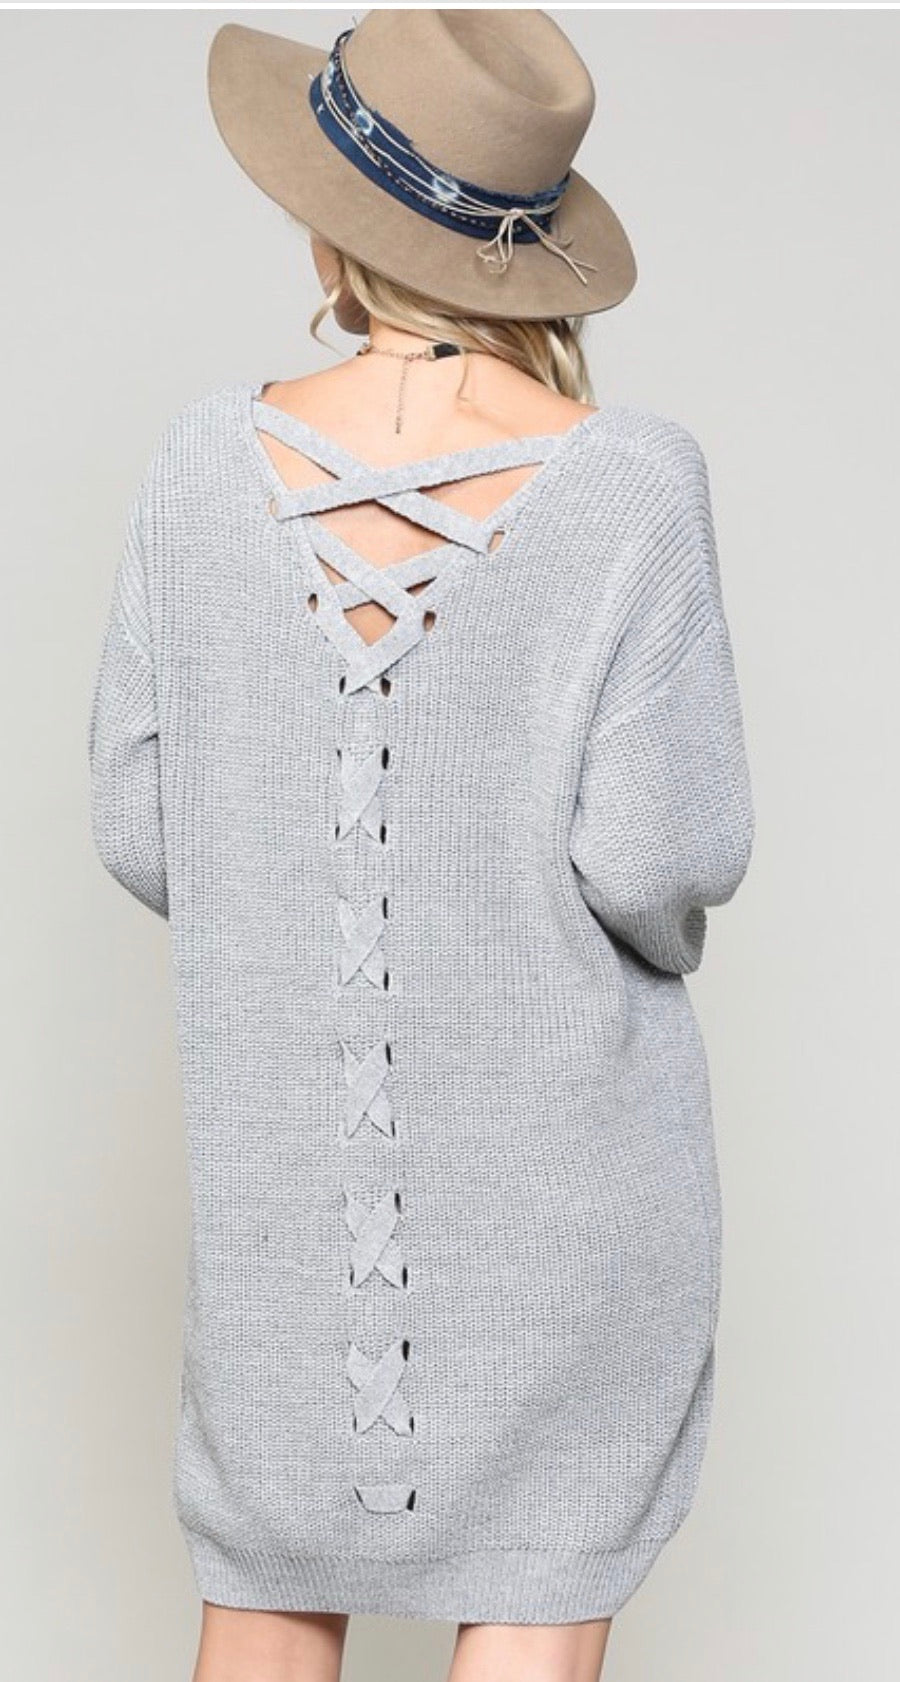 Baylor Sweater Tunic